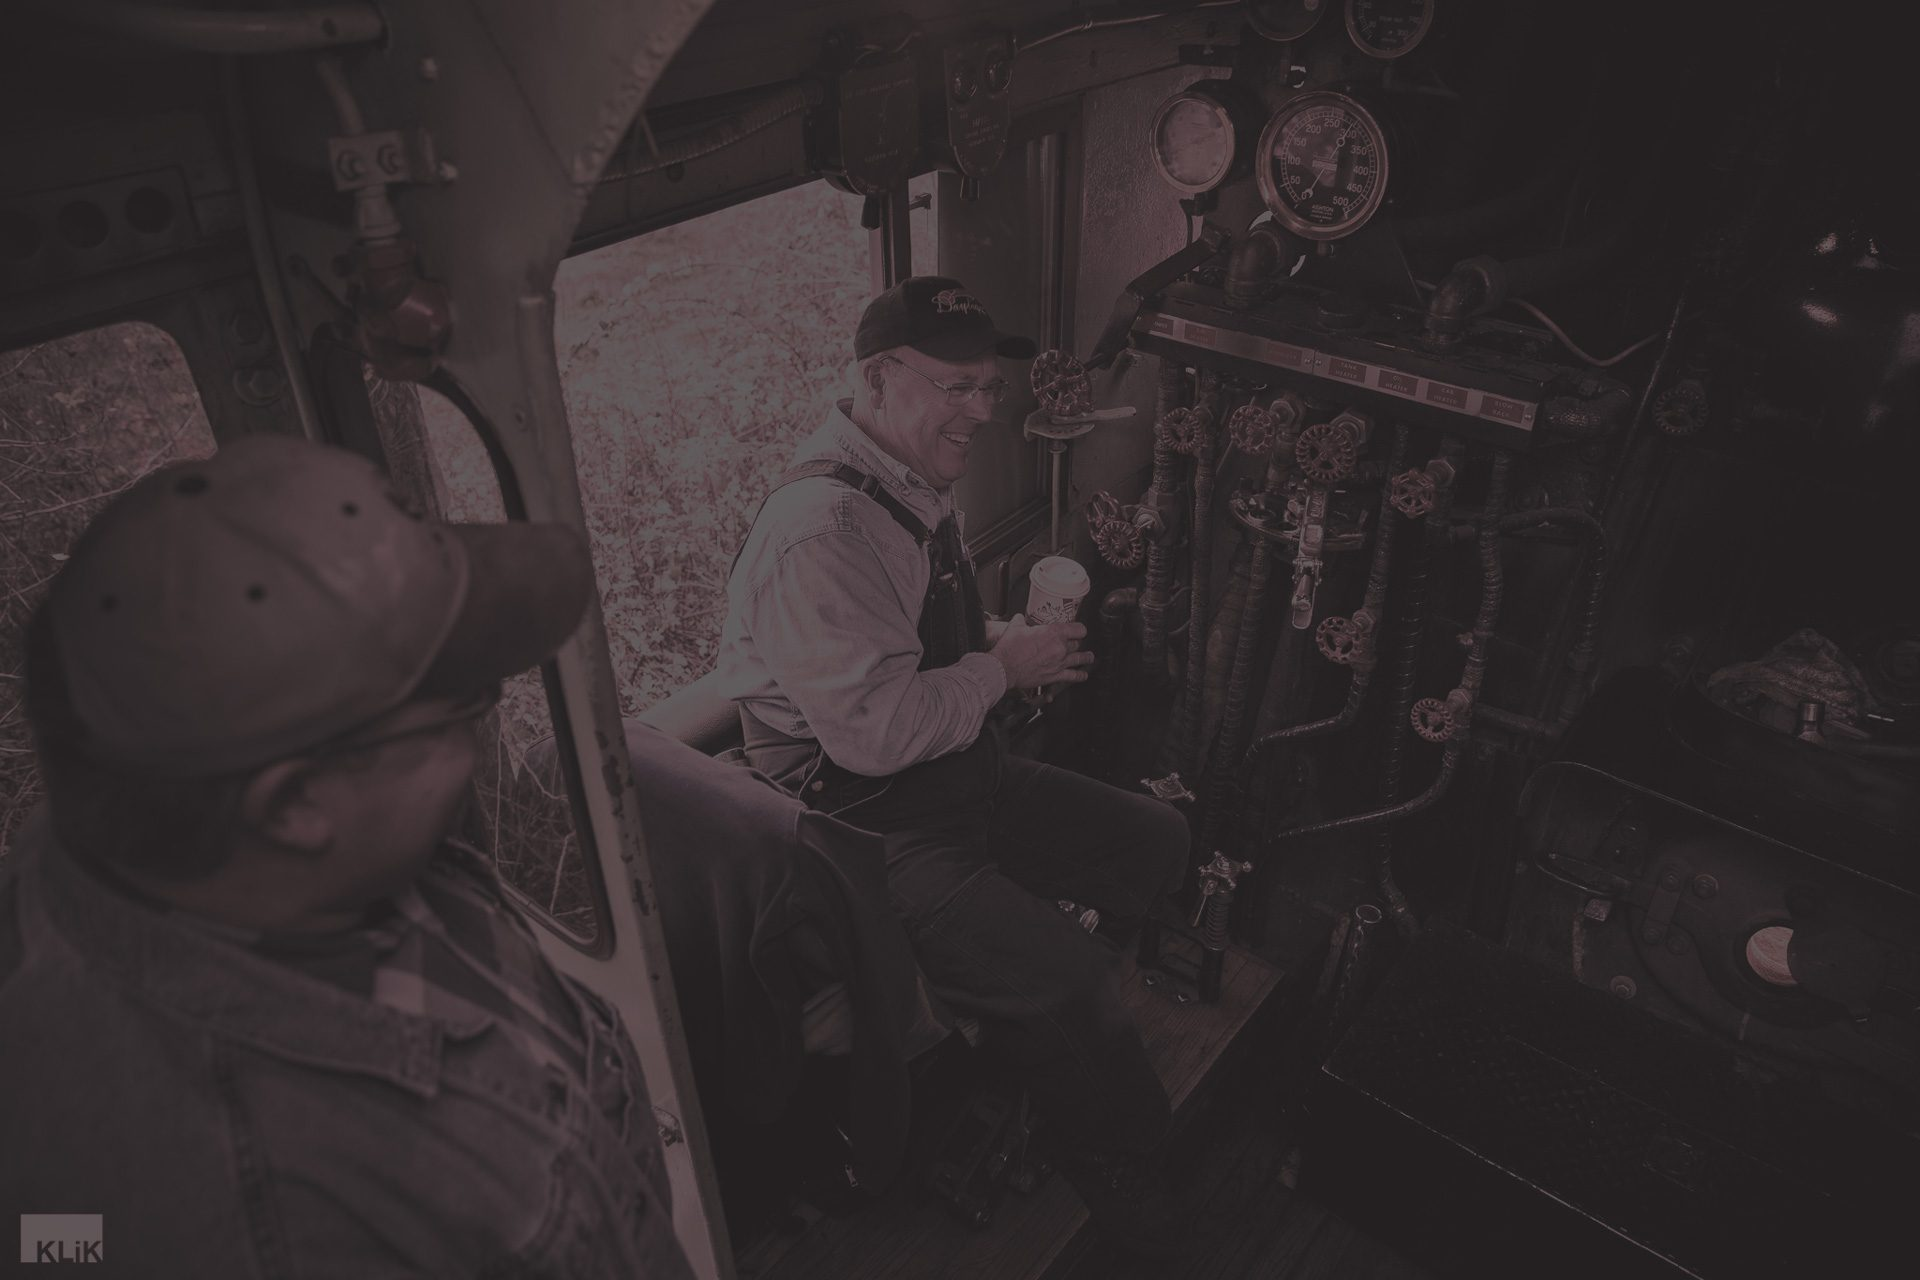 Conductor operating an antique locomotive - maroon overlay